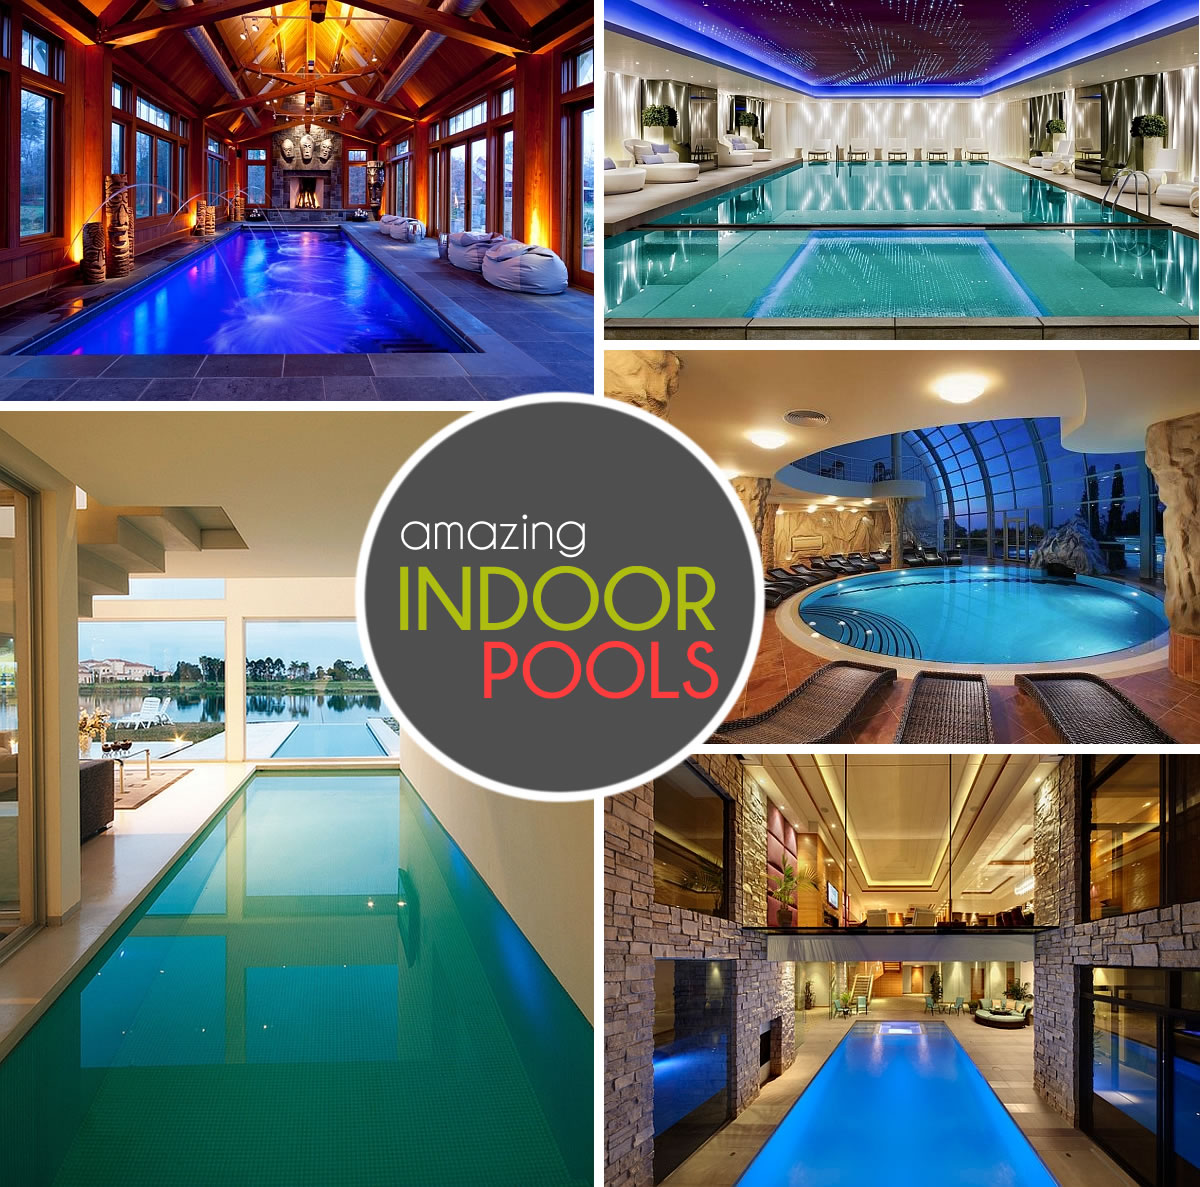 Jacuzzi Pool Ideas 50 Indoor Swimming Pool Ideas Taking A Dip In Style